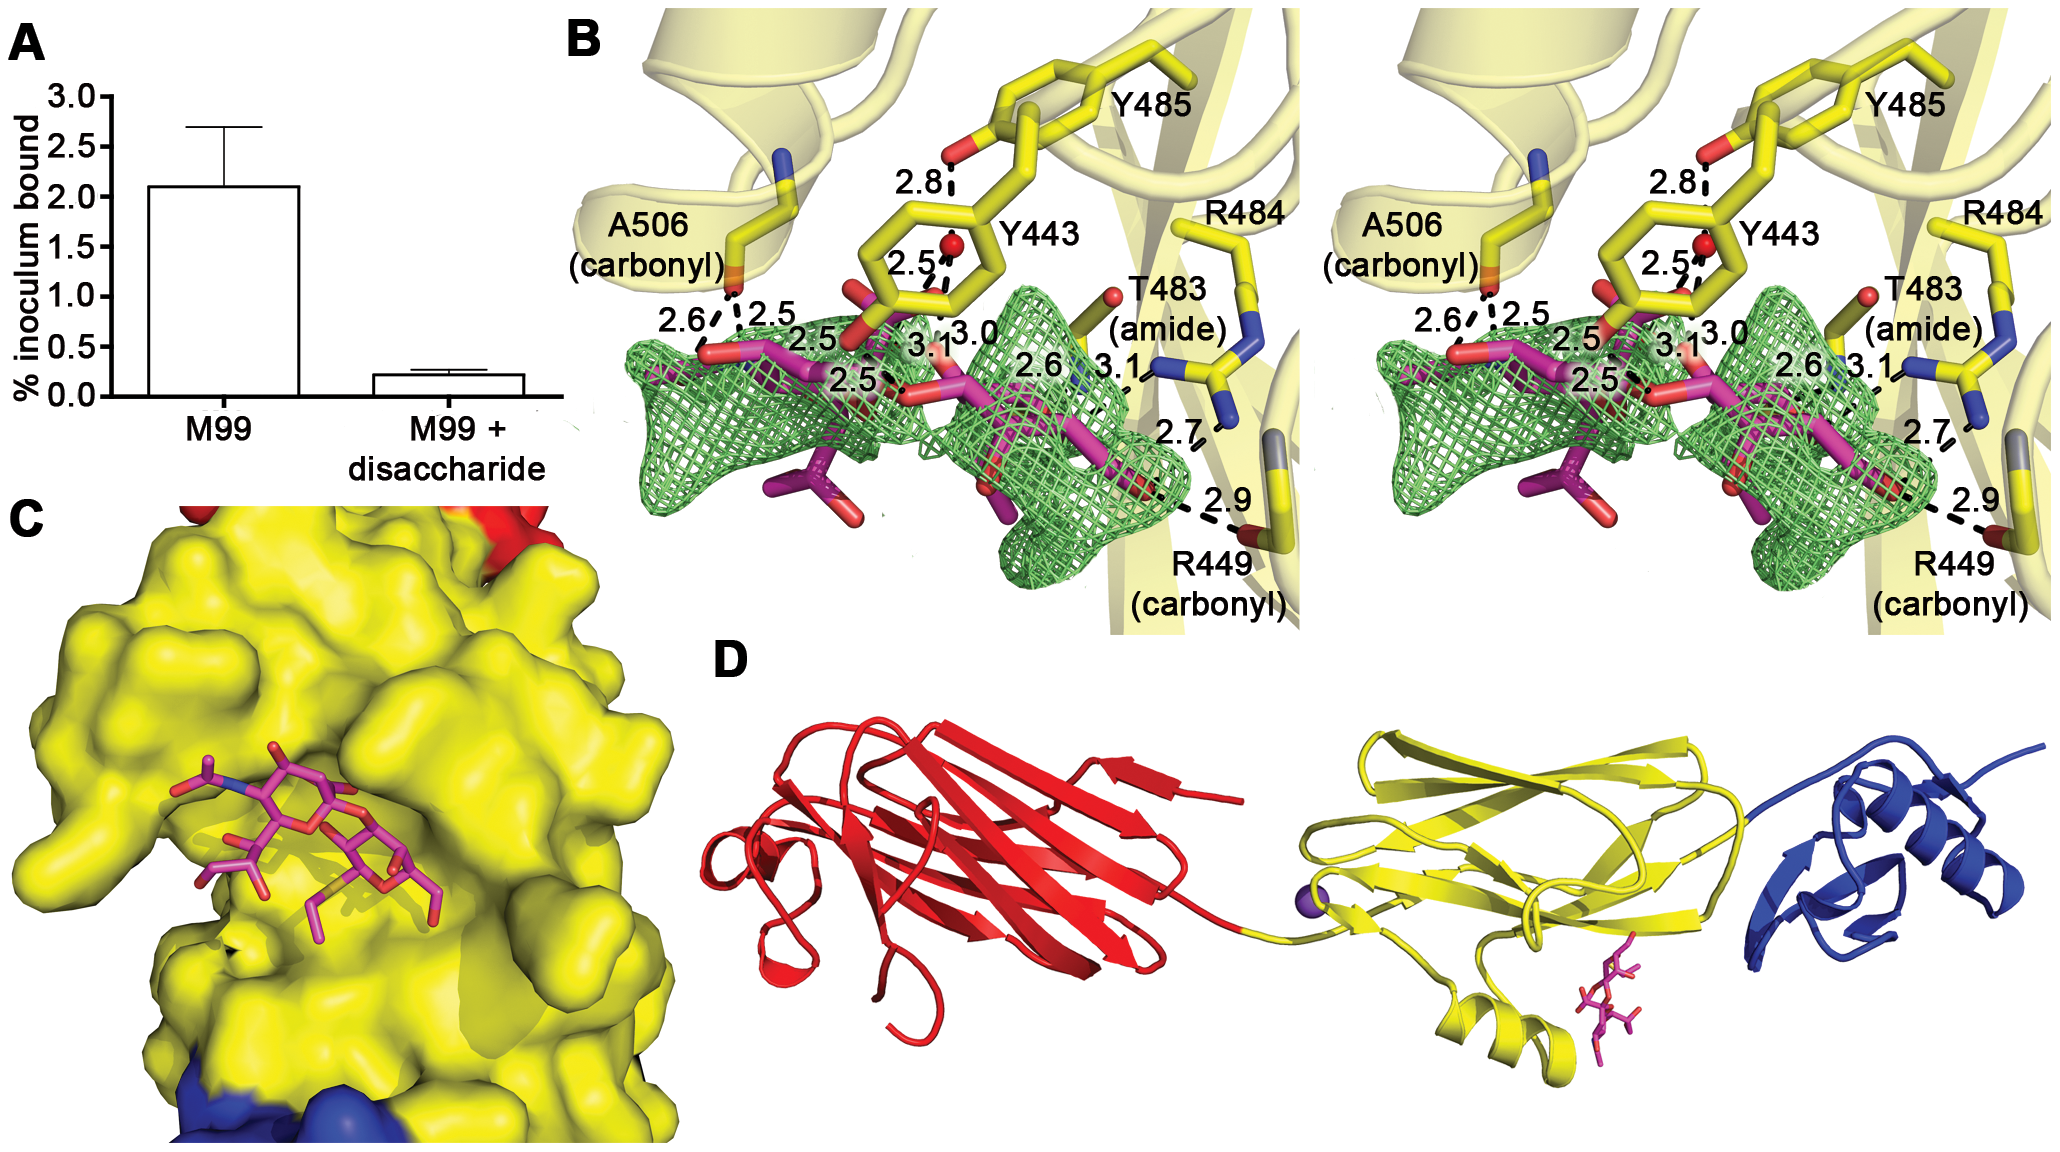 Identification of the receptor binding site.